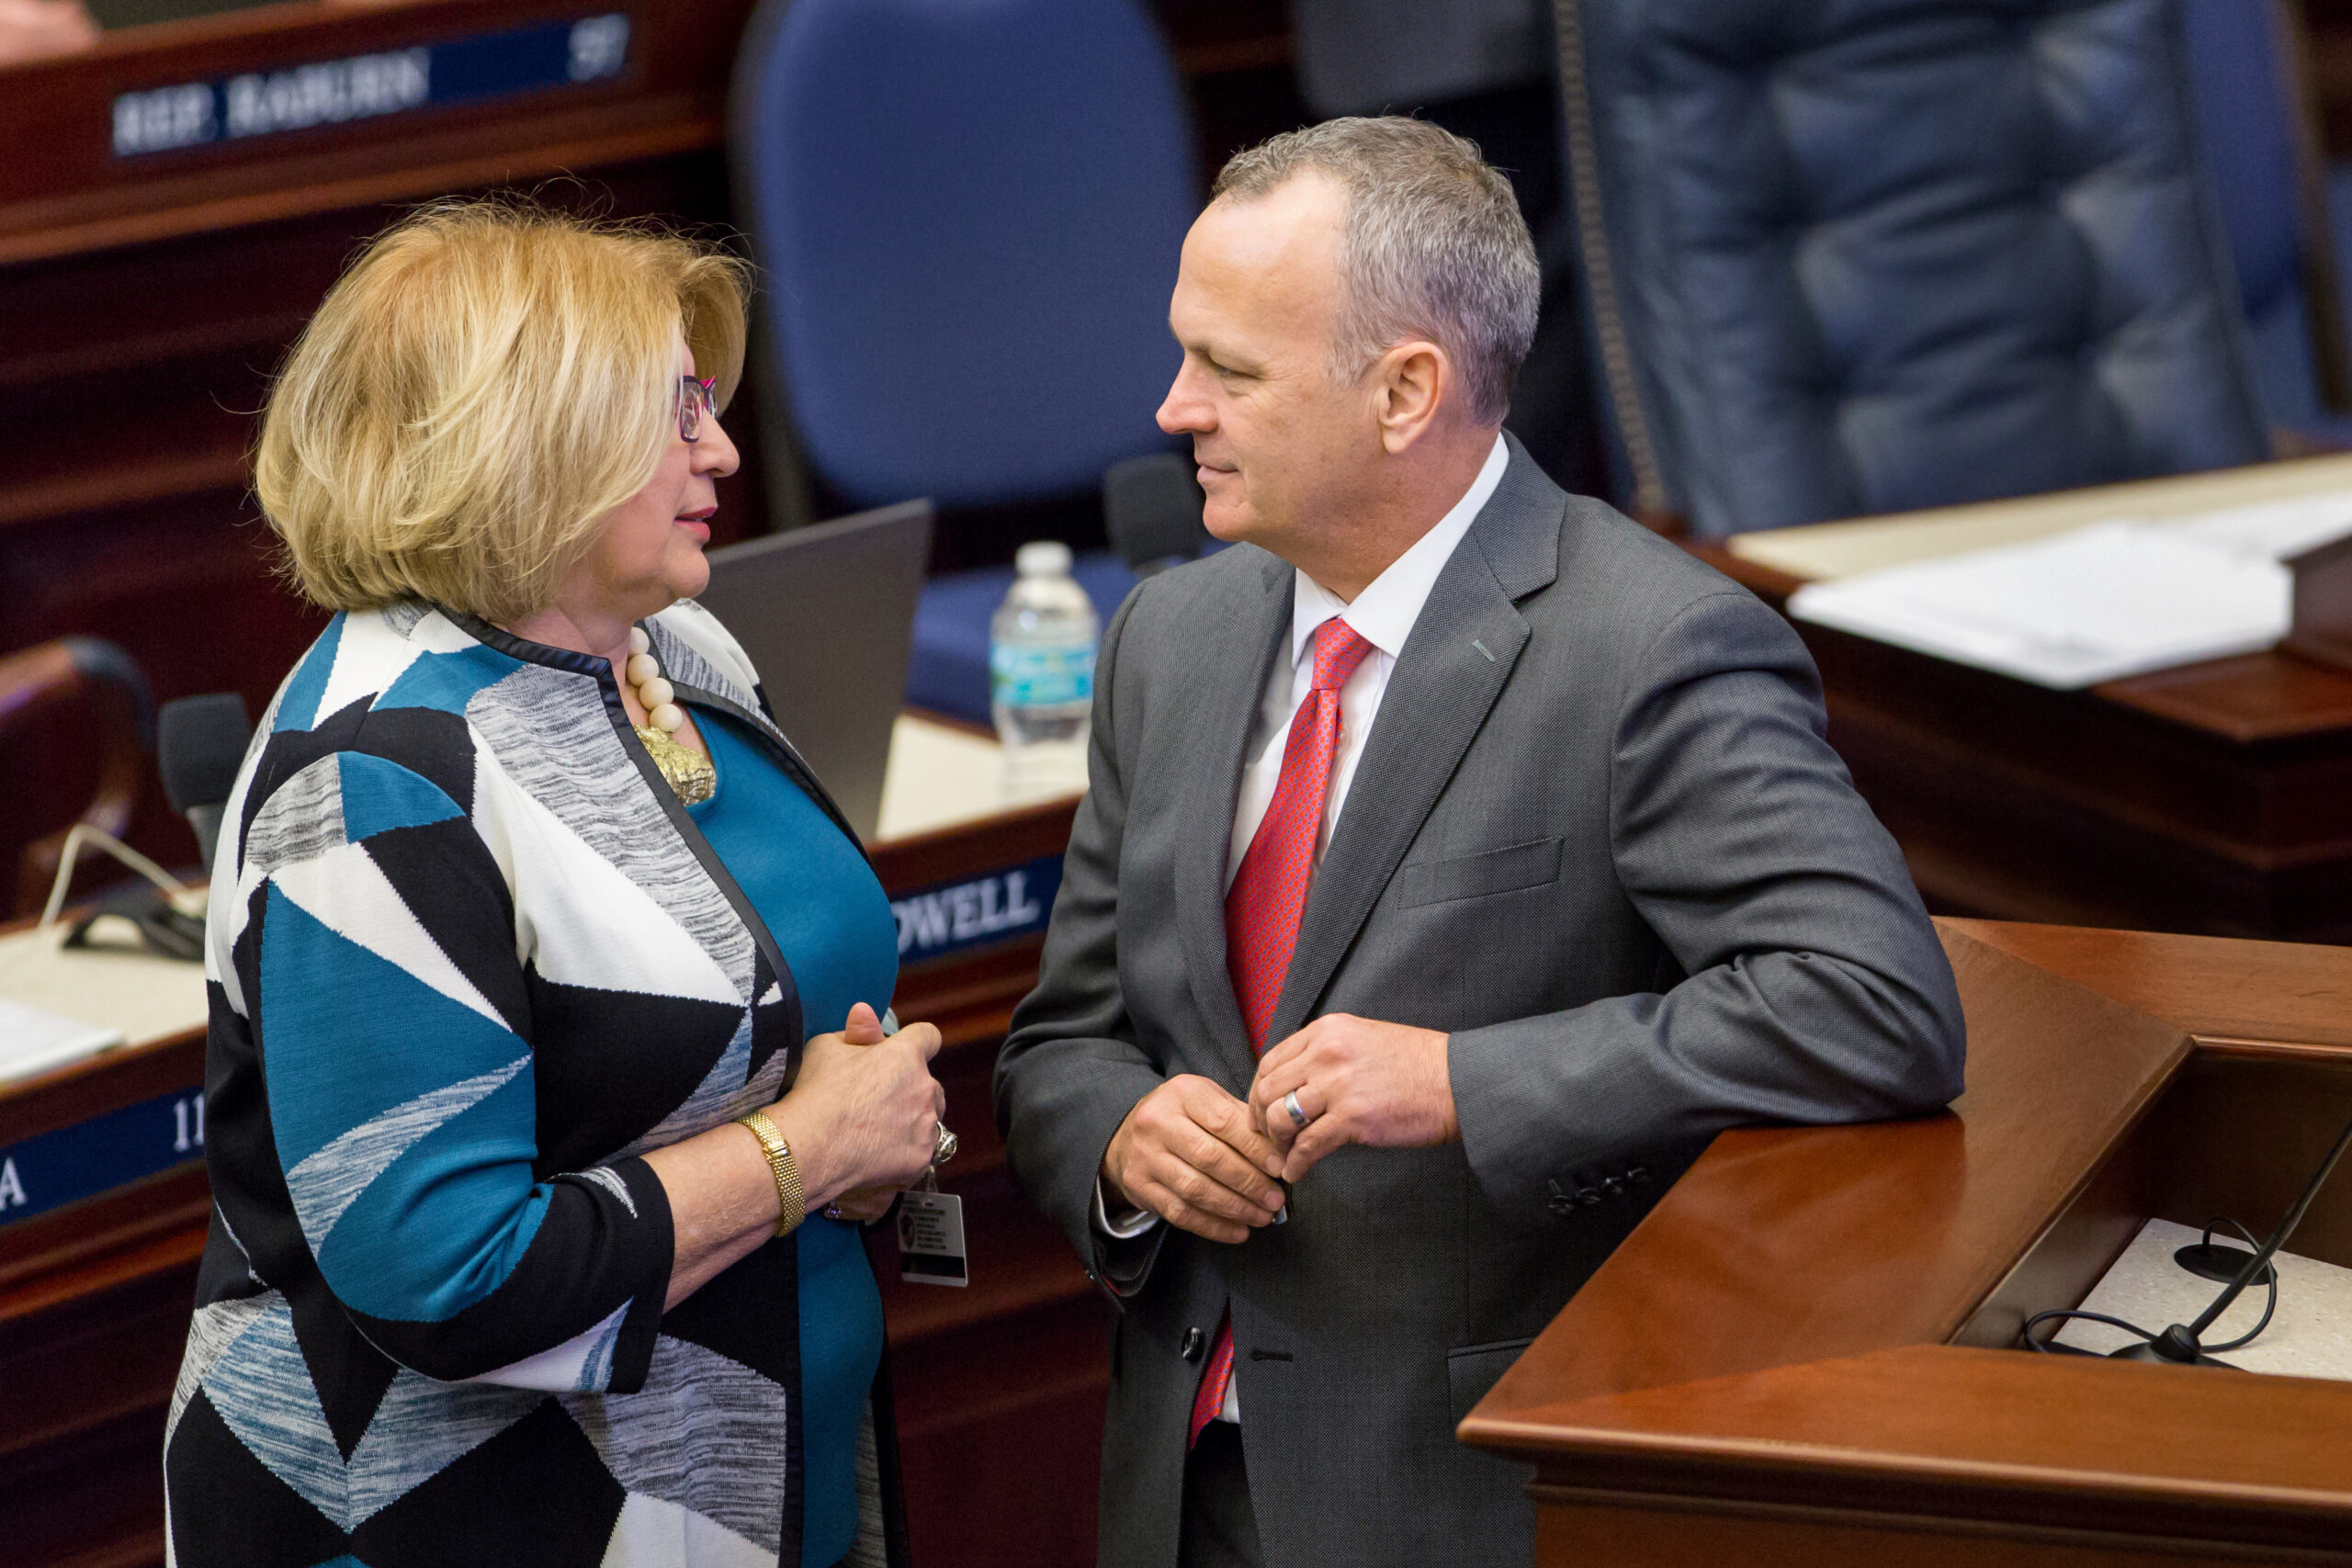 House Democratic Leader Janet Cruz, shown here with House Speaker Richard Corcoran, worries Hispanic communities face bigger challenges with returning to school.